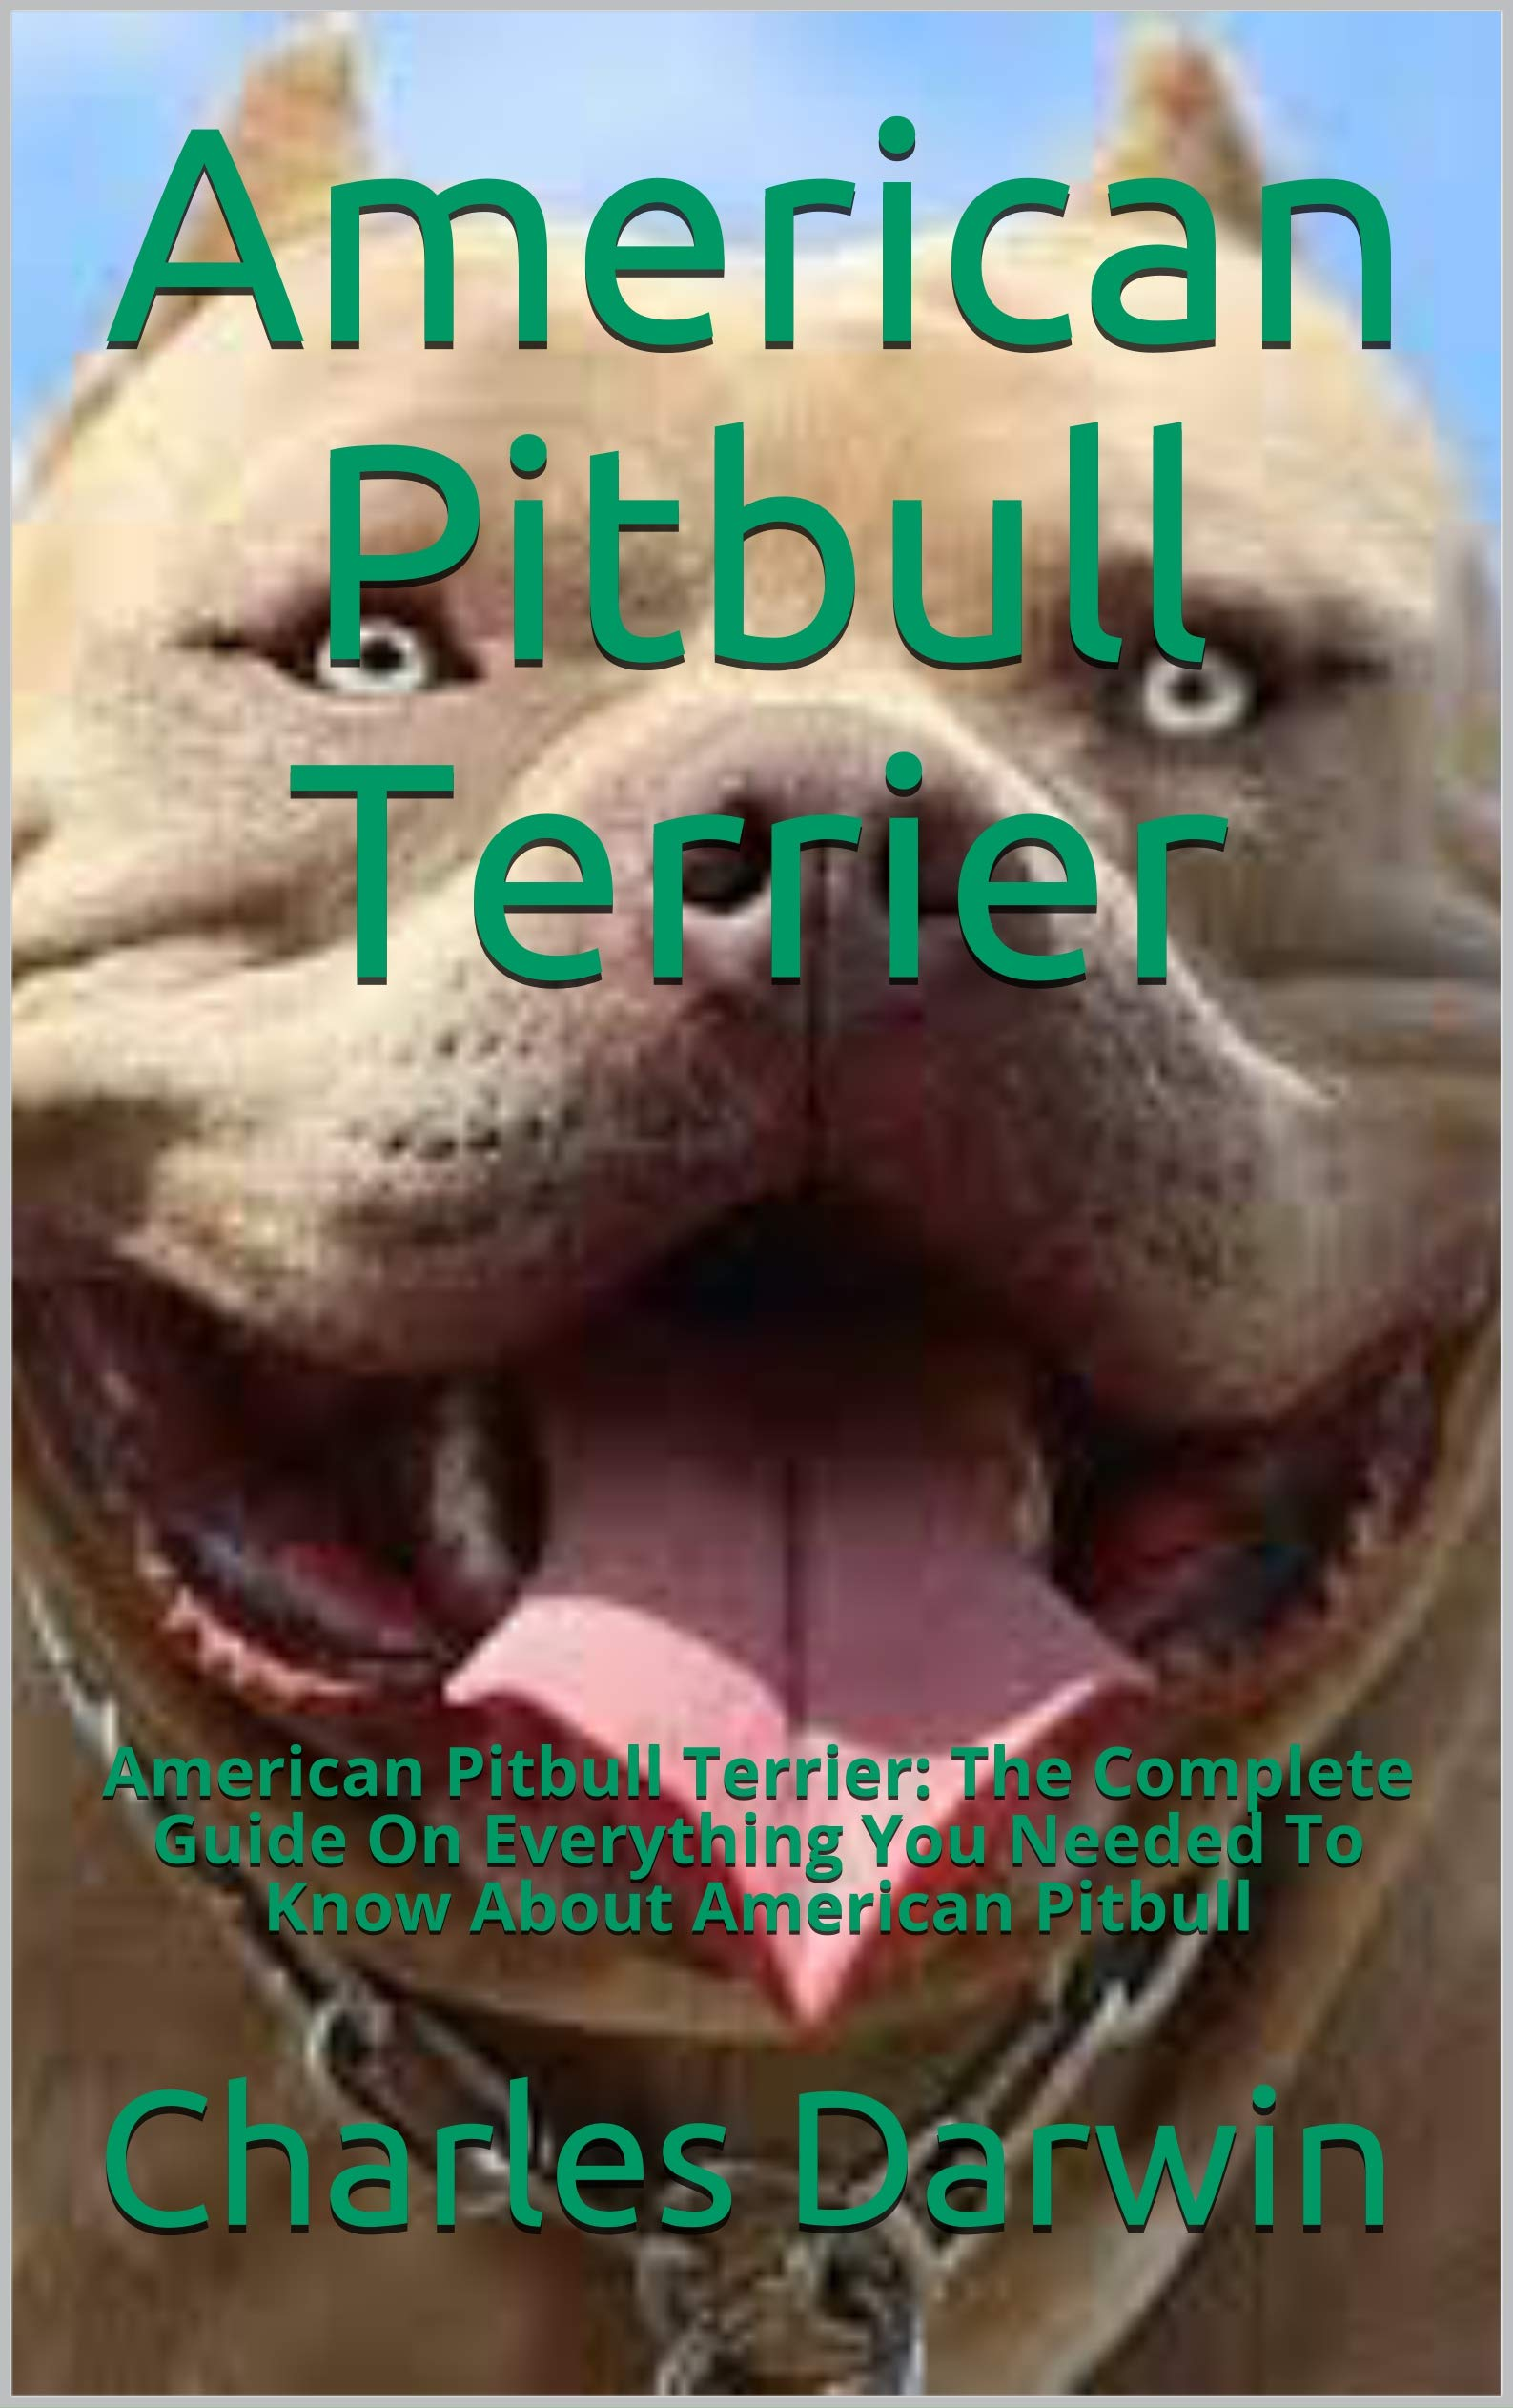 American Pitbull Terrier: American Pitbull Terrier: The Complete Guide On Everything You Needed To Know About American Pitbull